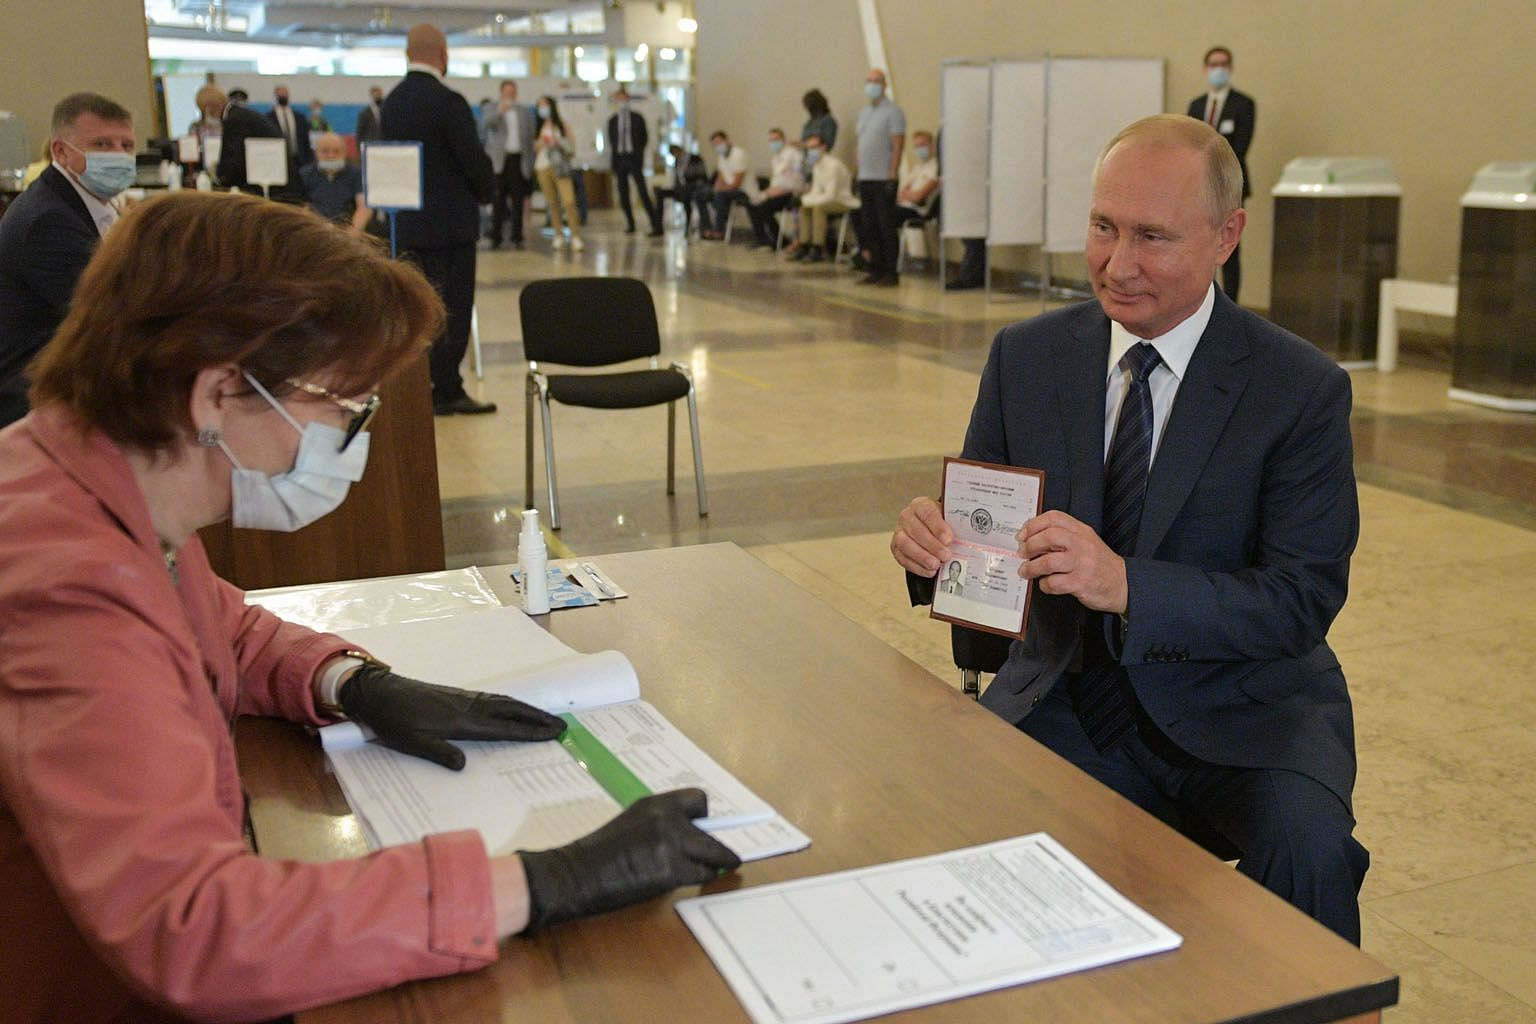 Russian President Vladimir Putin showing his passport to a member of a local electoral commission in Moscow ahead of casting his ballot in Wednesday's nationwide vote on constitutional reforms. The constitutional amendments were approved by just over